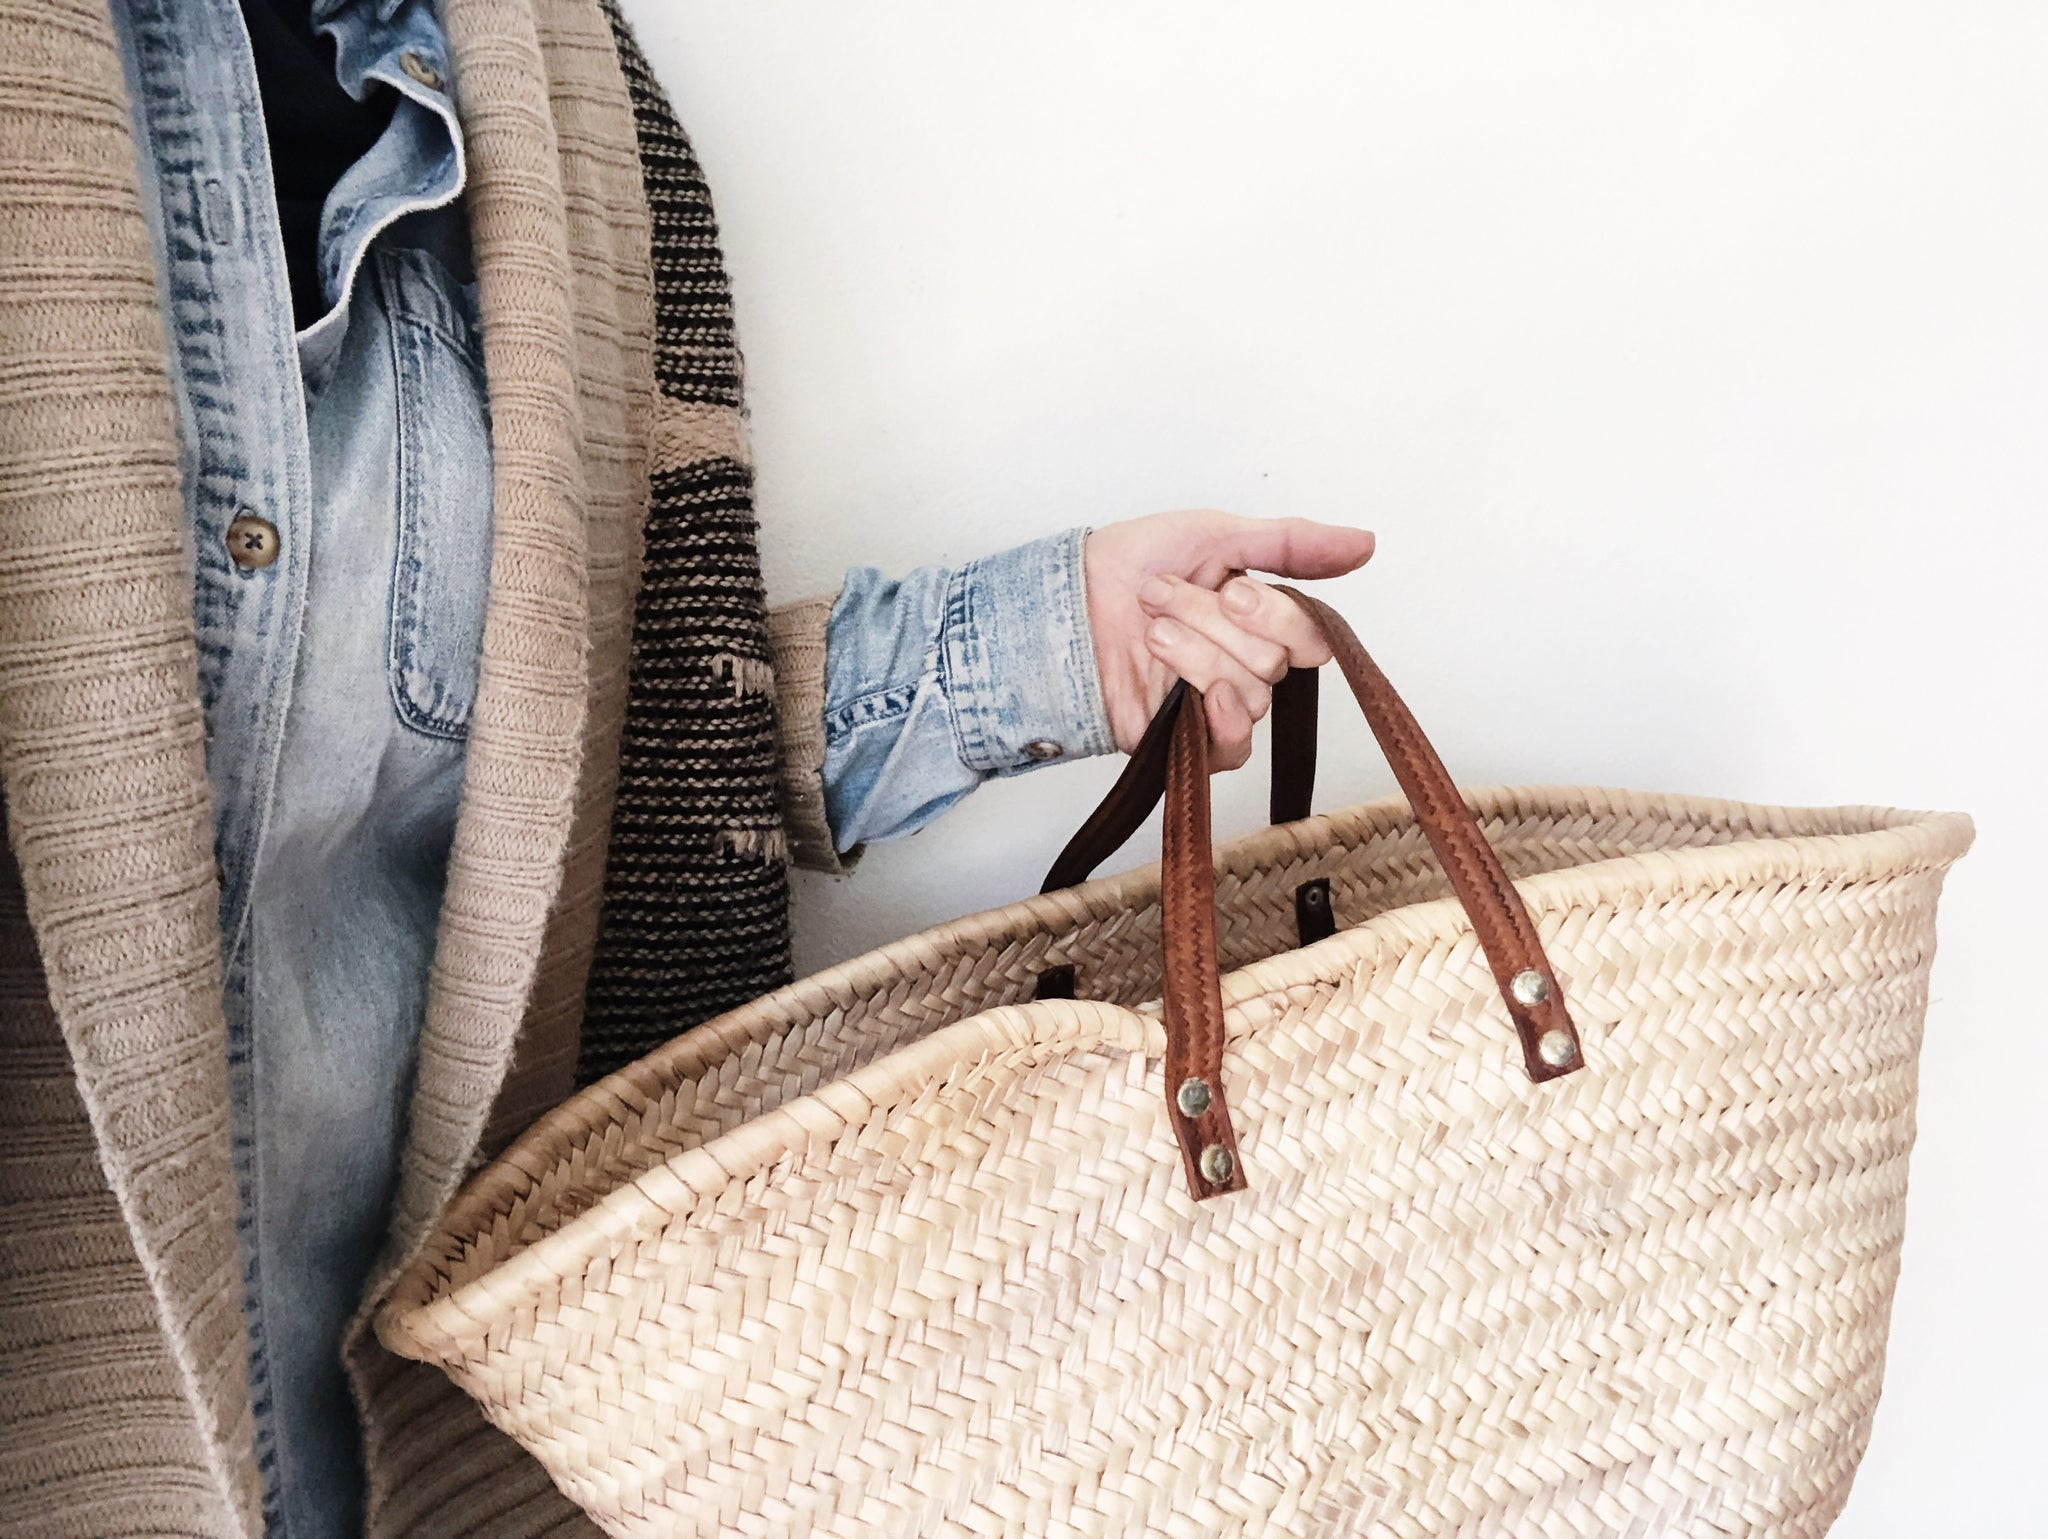 Seagrass Market Tote with Leather